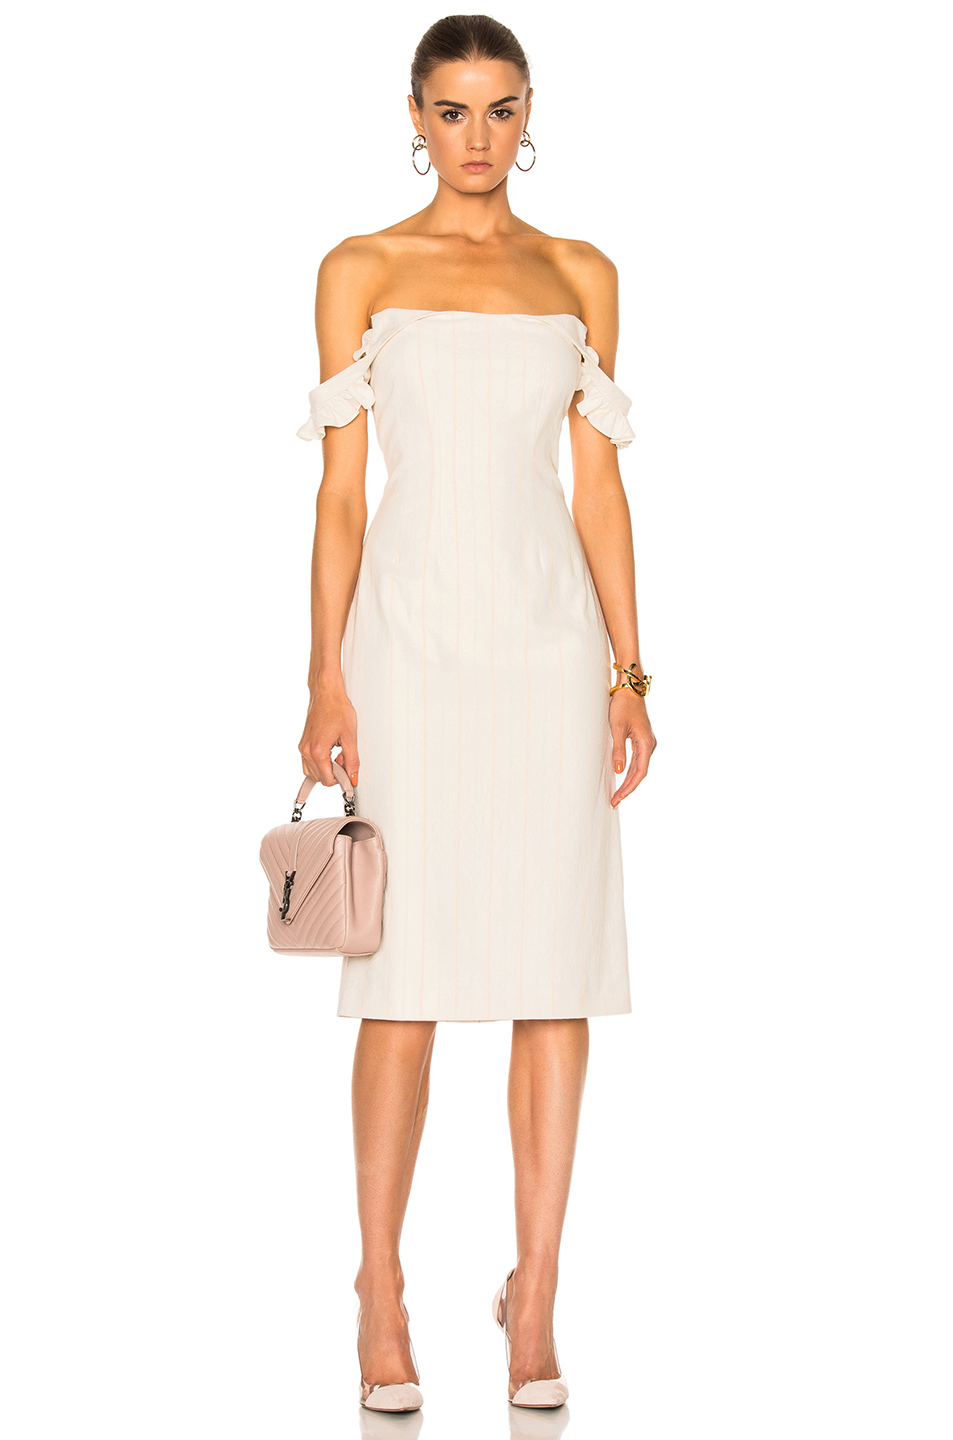 Brock Collection Daisy Dress in Neutrals,Stripes